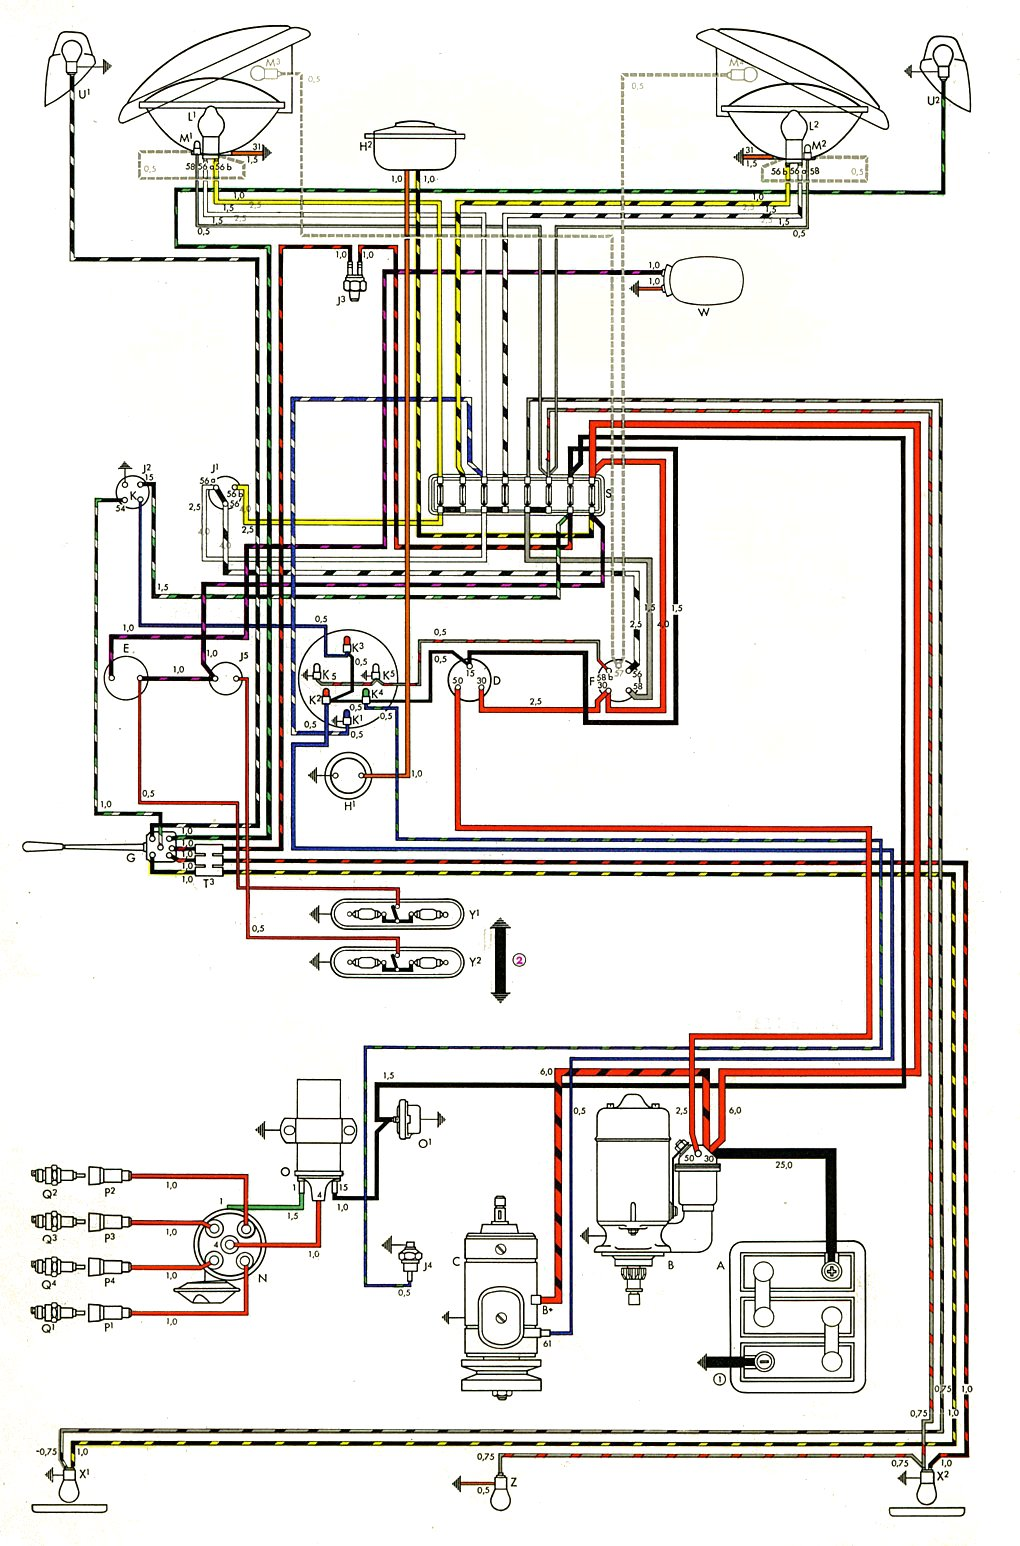 vw bus wiring diagrams thesamba.com :: type 2 wiring diagrams vw bus wiring diagram pdf